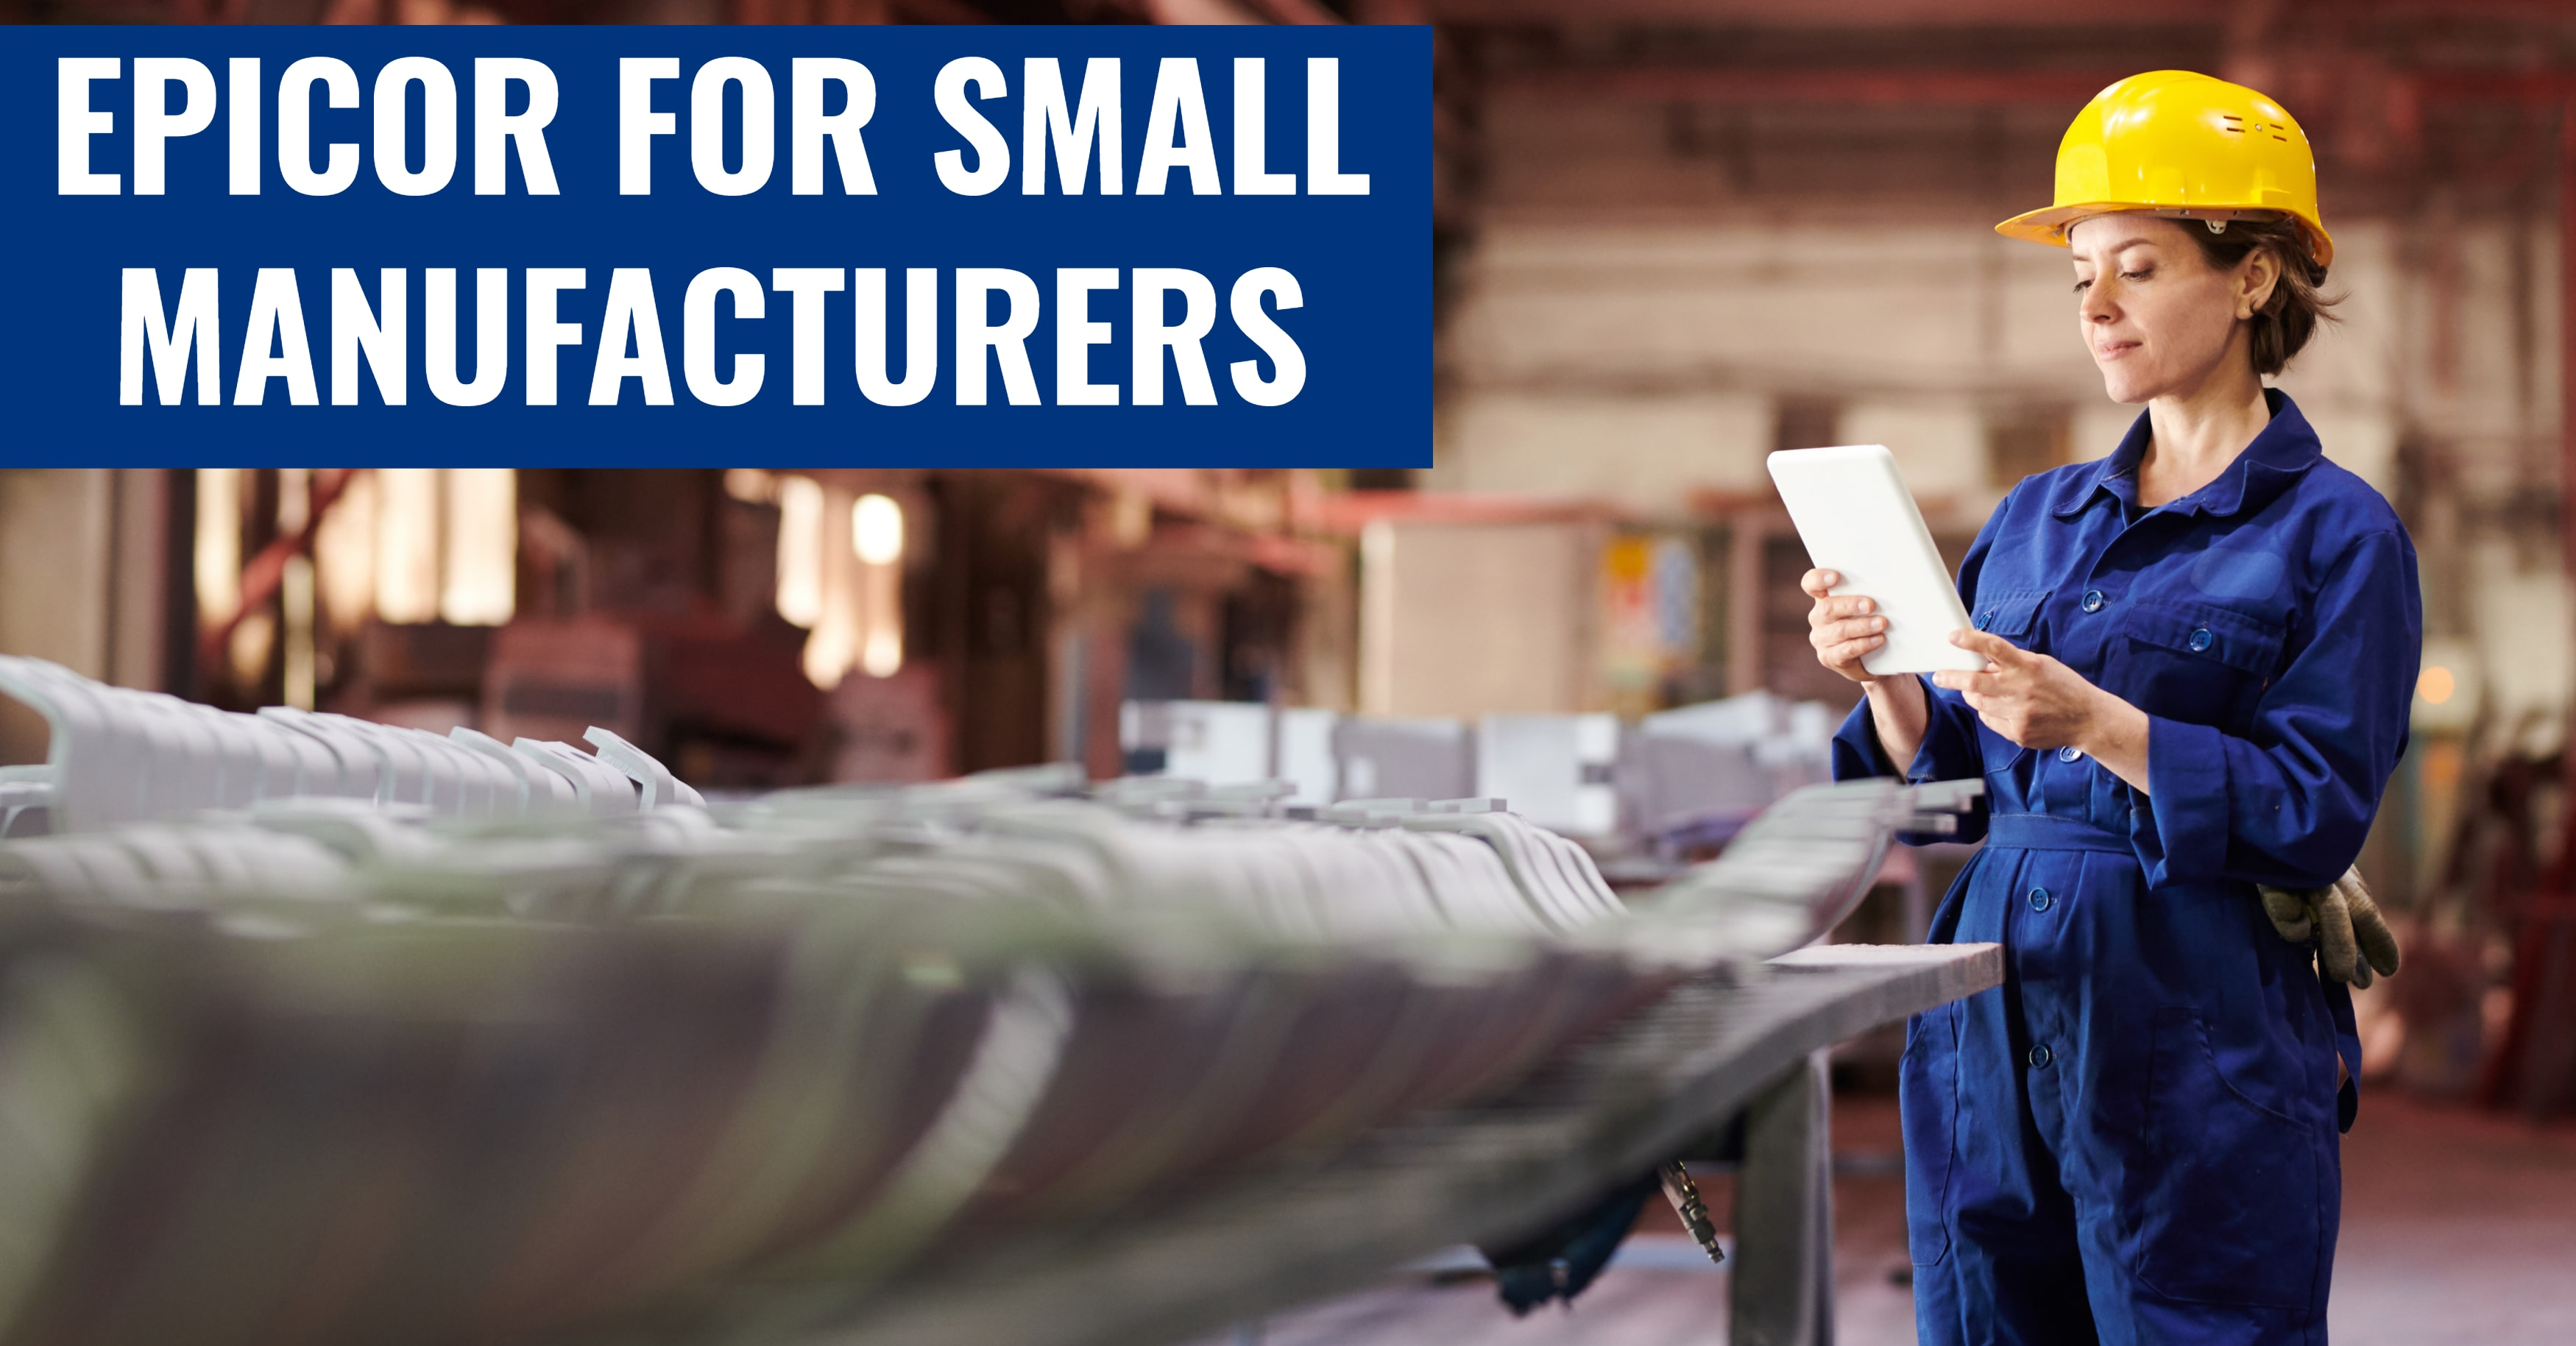 Epicor Small Manufacturing Software